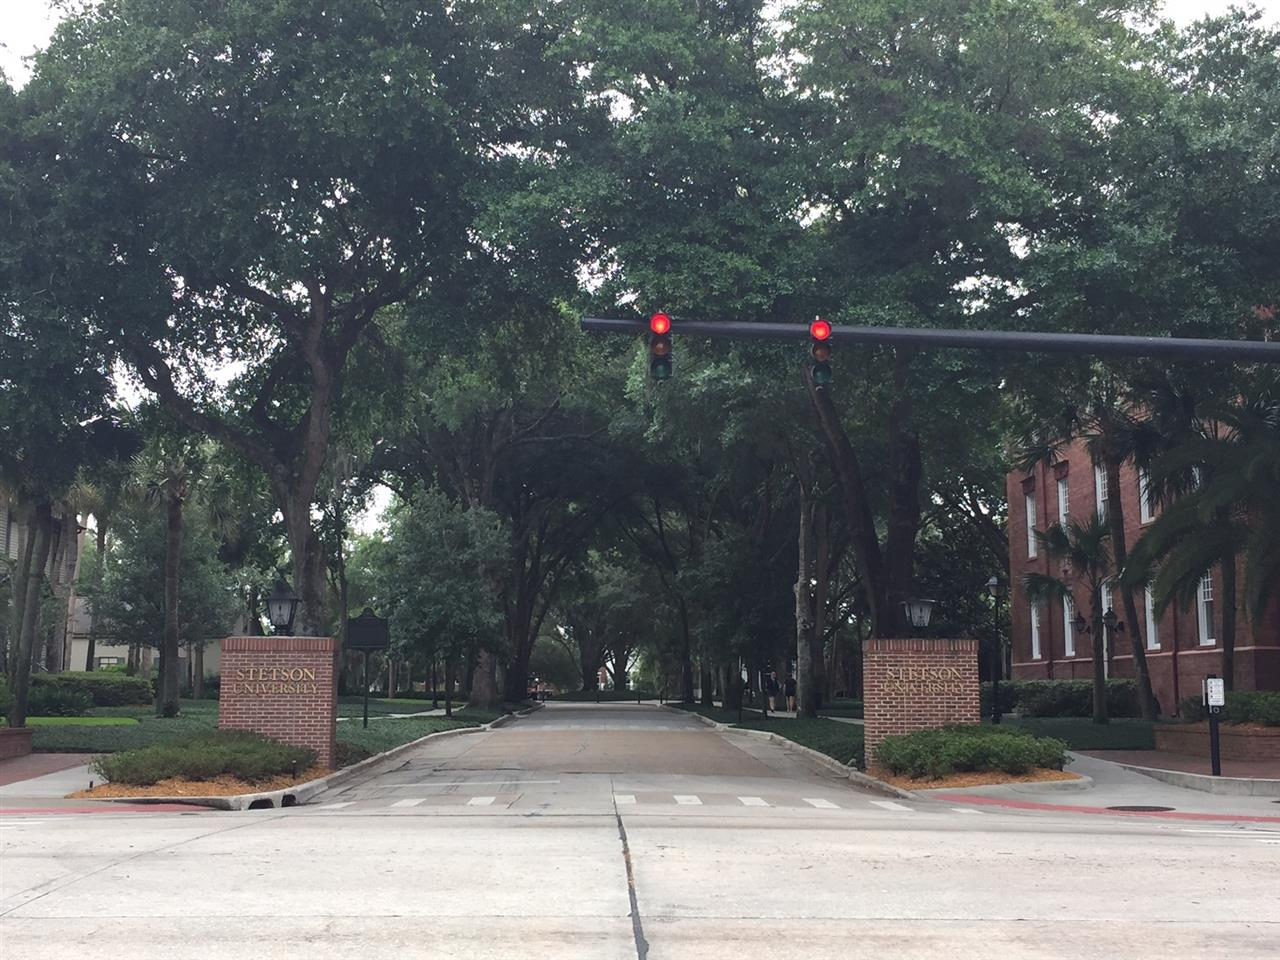 #Deland, FL #Stetson University #Entrance